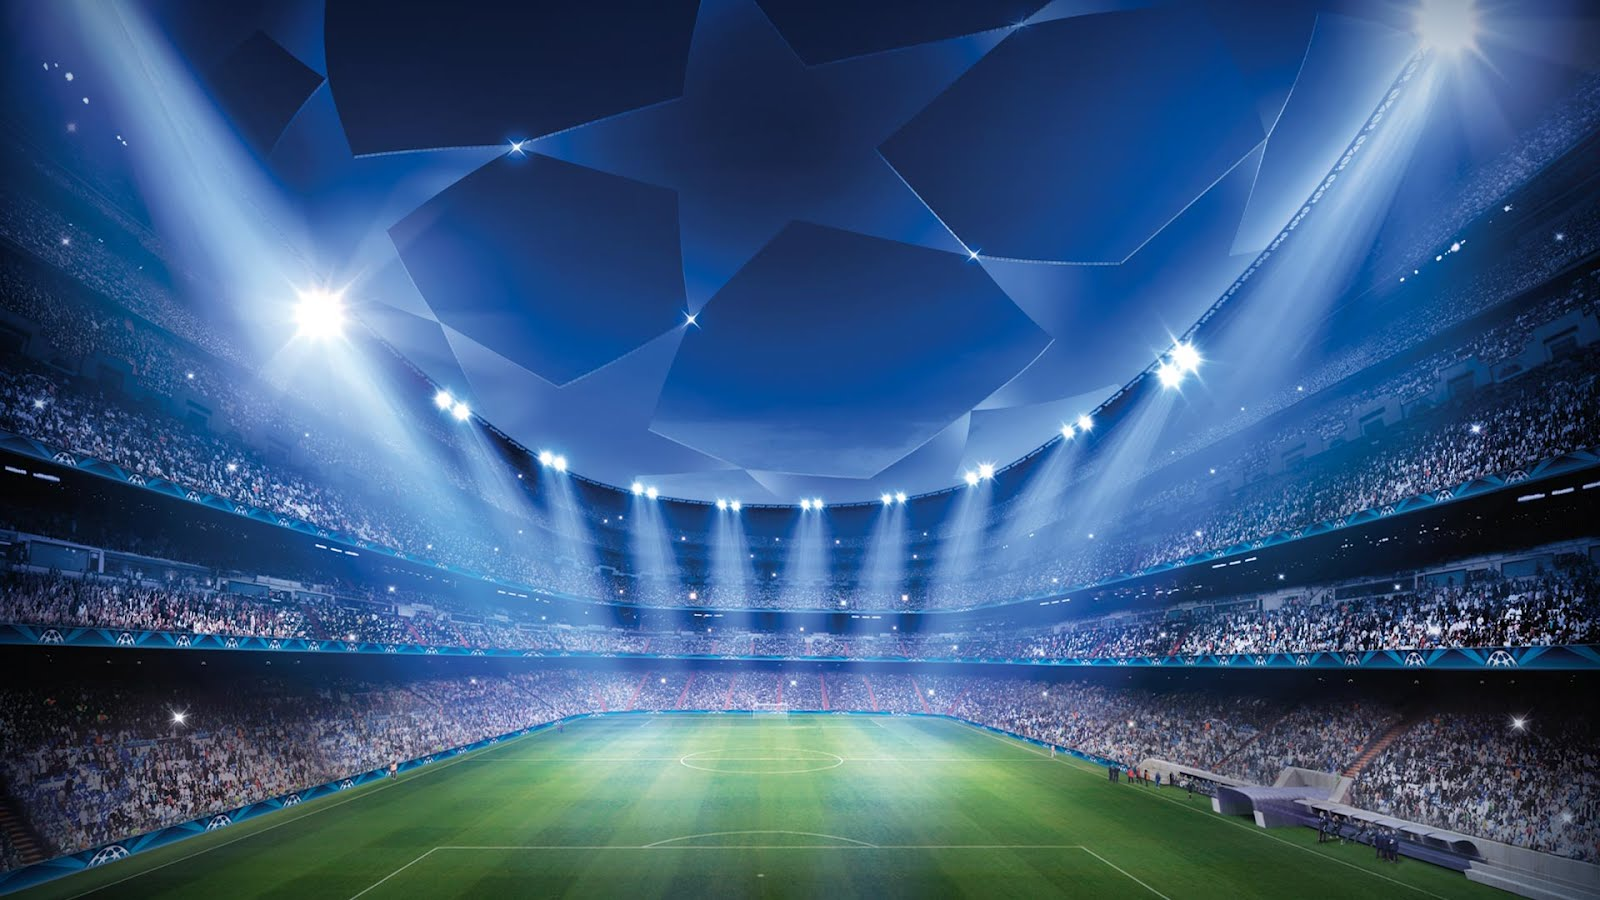 Champions League Wallpaper Wide ImageBankbiz 1600x900